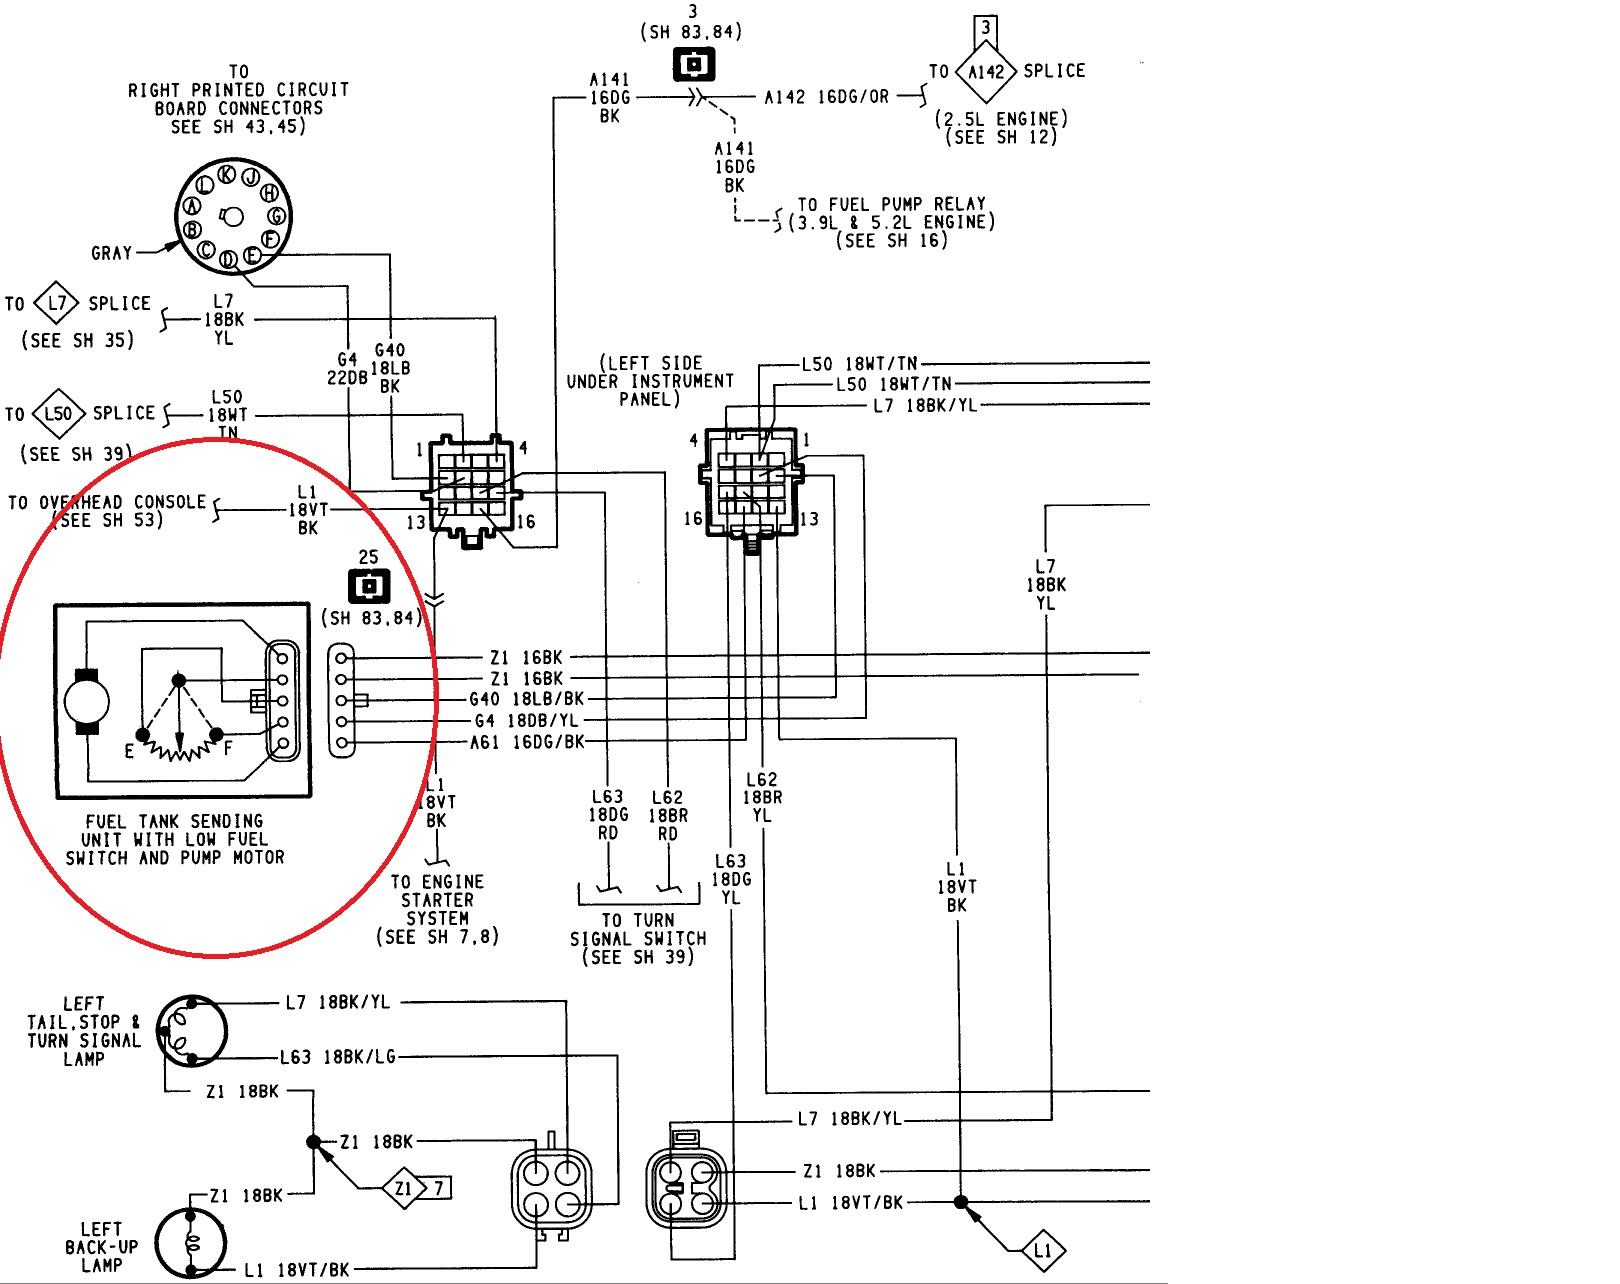 hight resolution of vdo trim gauge wiring diagram wiring diagram db vdo wiring diagram vdo rudder gauge wiring diagram